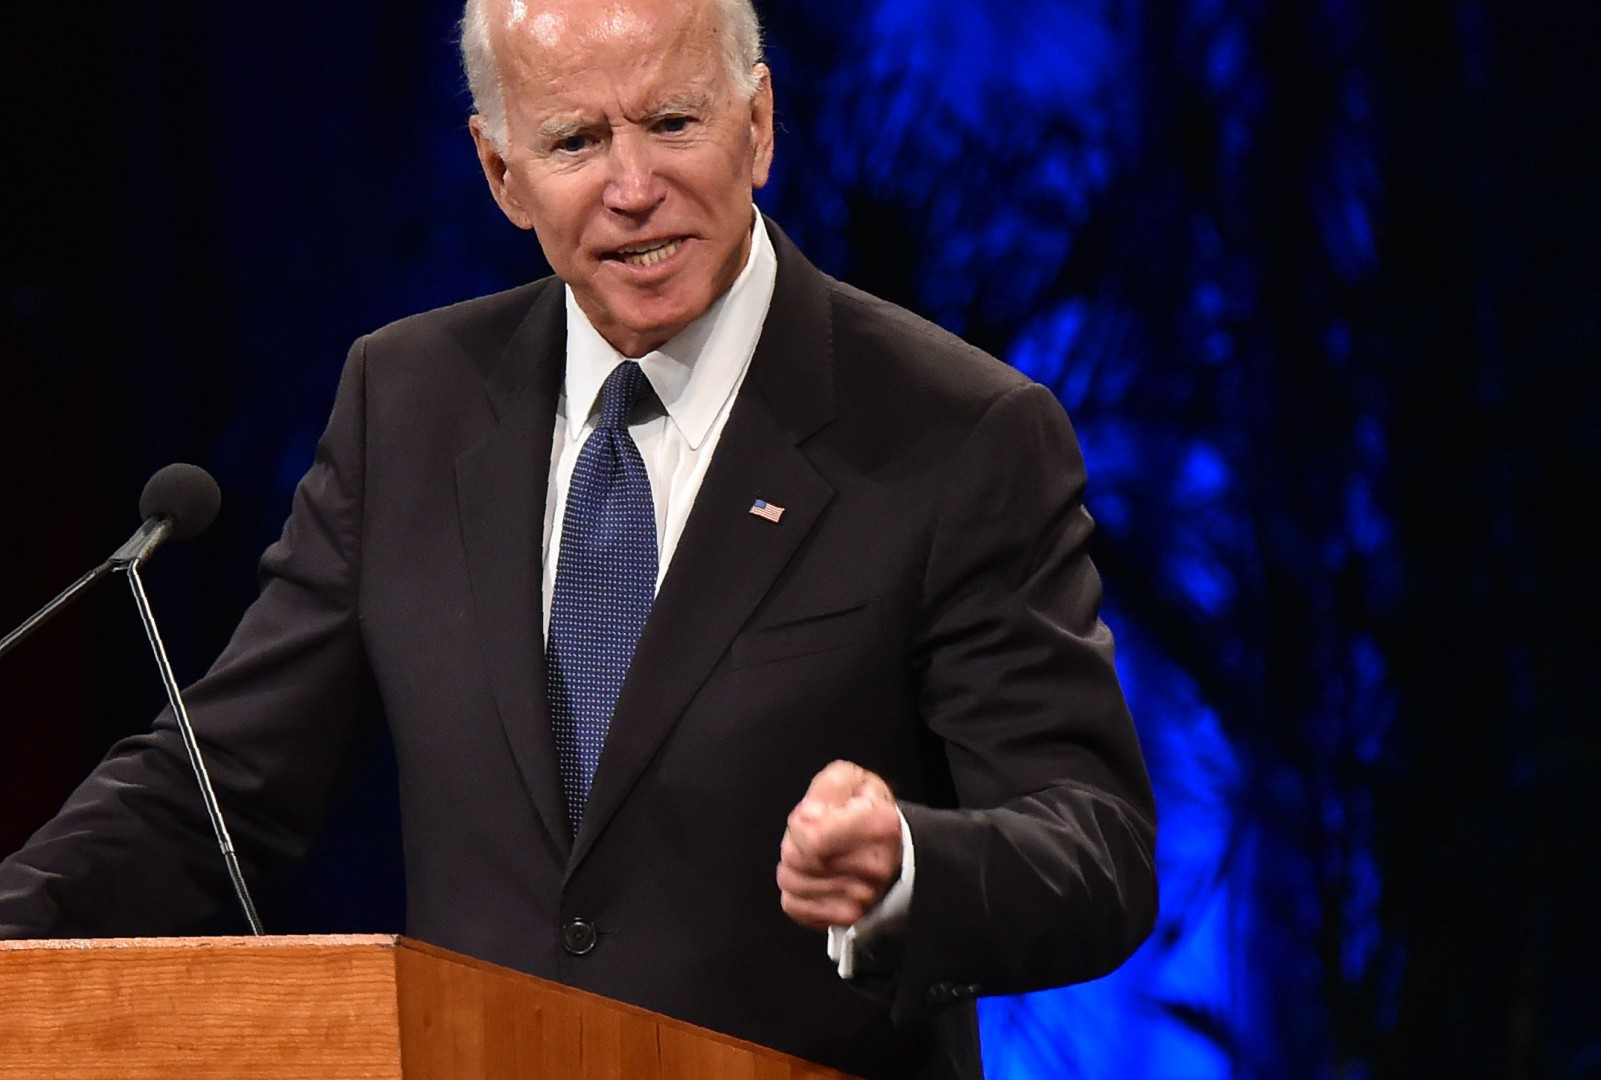 "(FILES) In this file photo taken on August 30, 2018 former US vice president Joe Biden speaks during the memorial service for the late US Senator John McCain at the North Phoenix Baptist Church in Phoenix, Arizona. - Democratic former US vice president Joe Biden has conceded that his advanced years would be an issue if he ran for president in 2020. At 75, Biden is three years older than Republican President Donald Trump and would be 77 by the time his party's primary contest got underway.""I think age is a totally legitimate thing to raise,"" said Biden, who was vice president under Barack Obama, during a speech in Michigan on October 16, 2018. (Photo by Robyn Beck / AFP)"